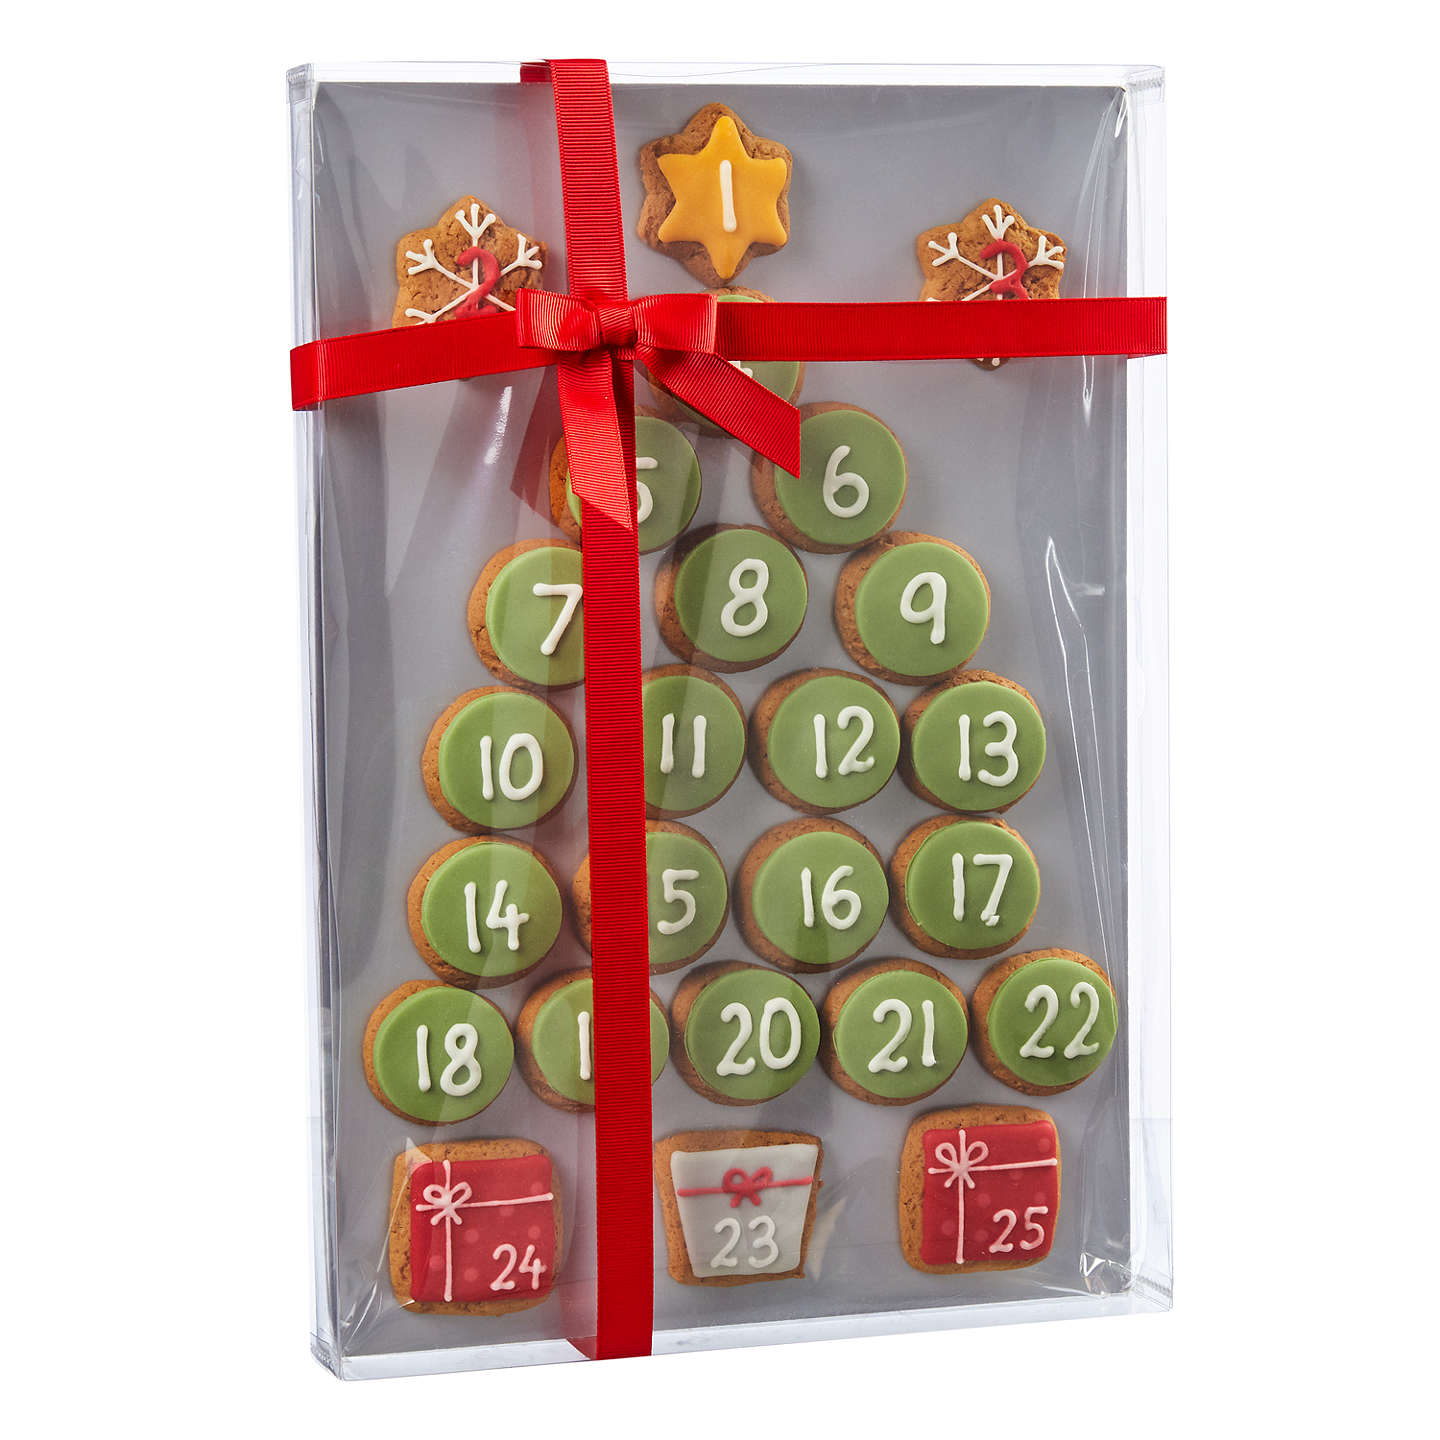 Buyimage On Food Hand Decorated Iced Gingerbread Advent Calendar, 300G